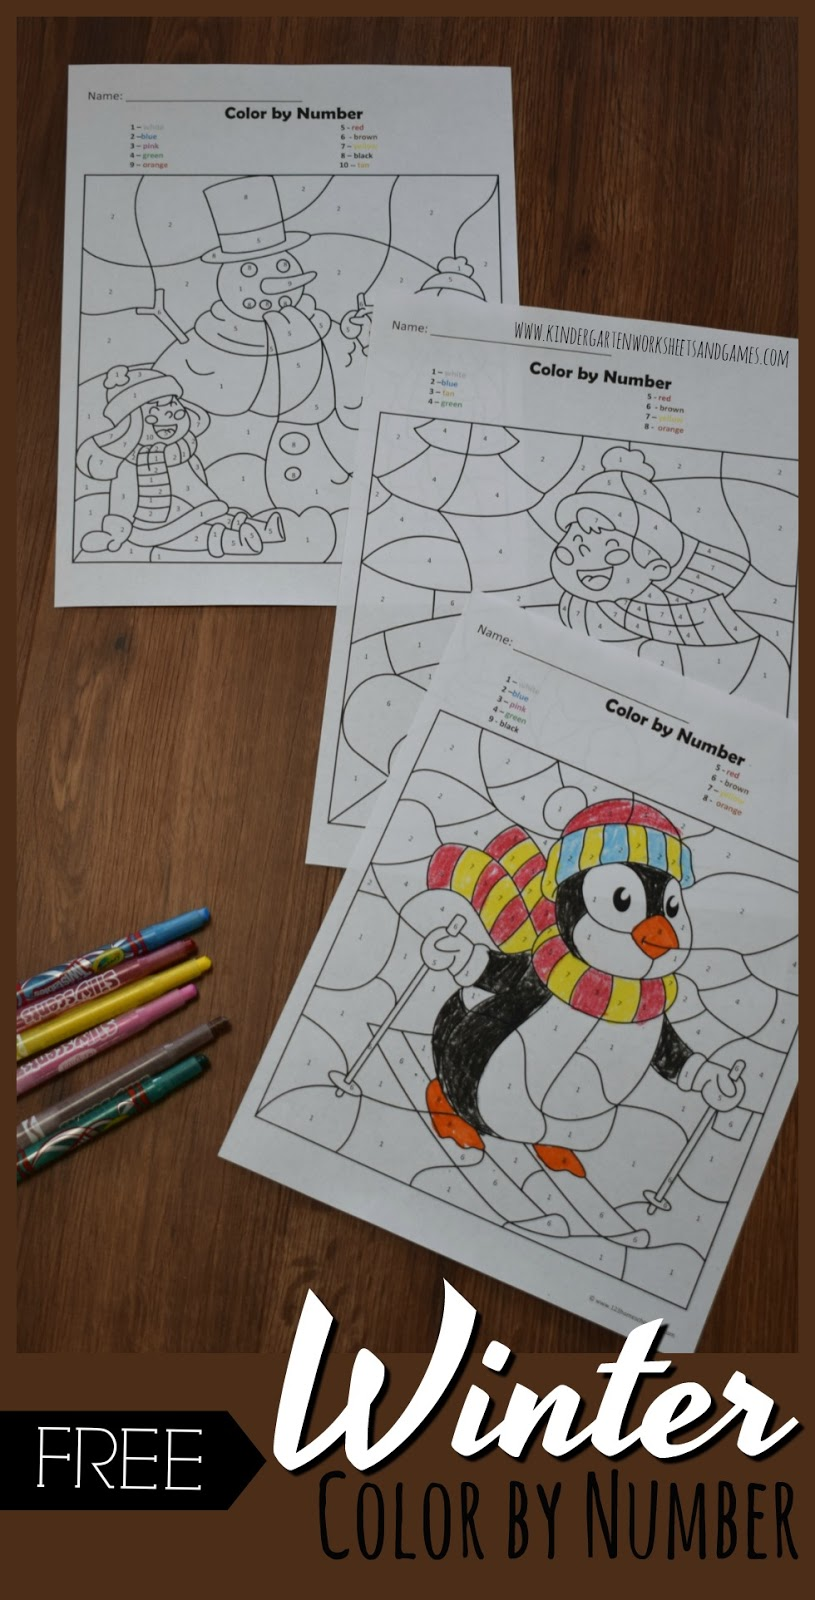 Kindergarten Worksheets and Games: FREE Winter Color by Number